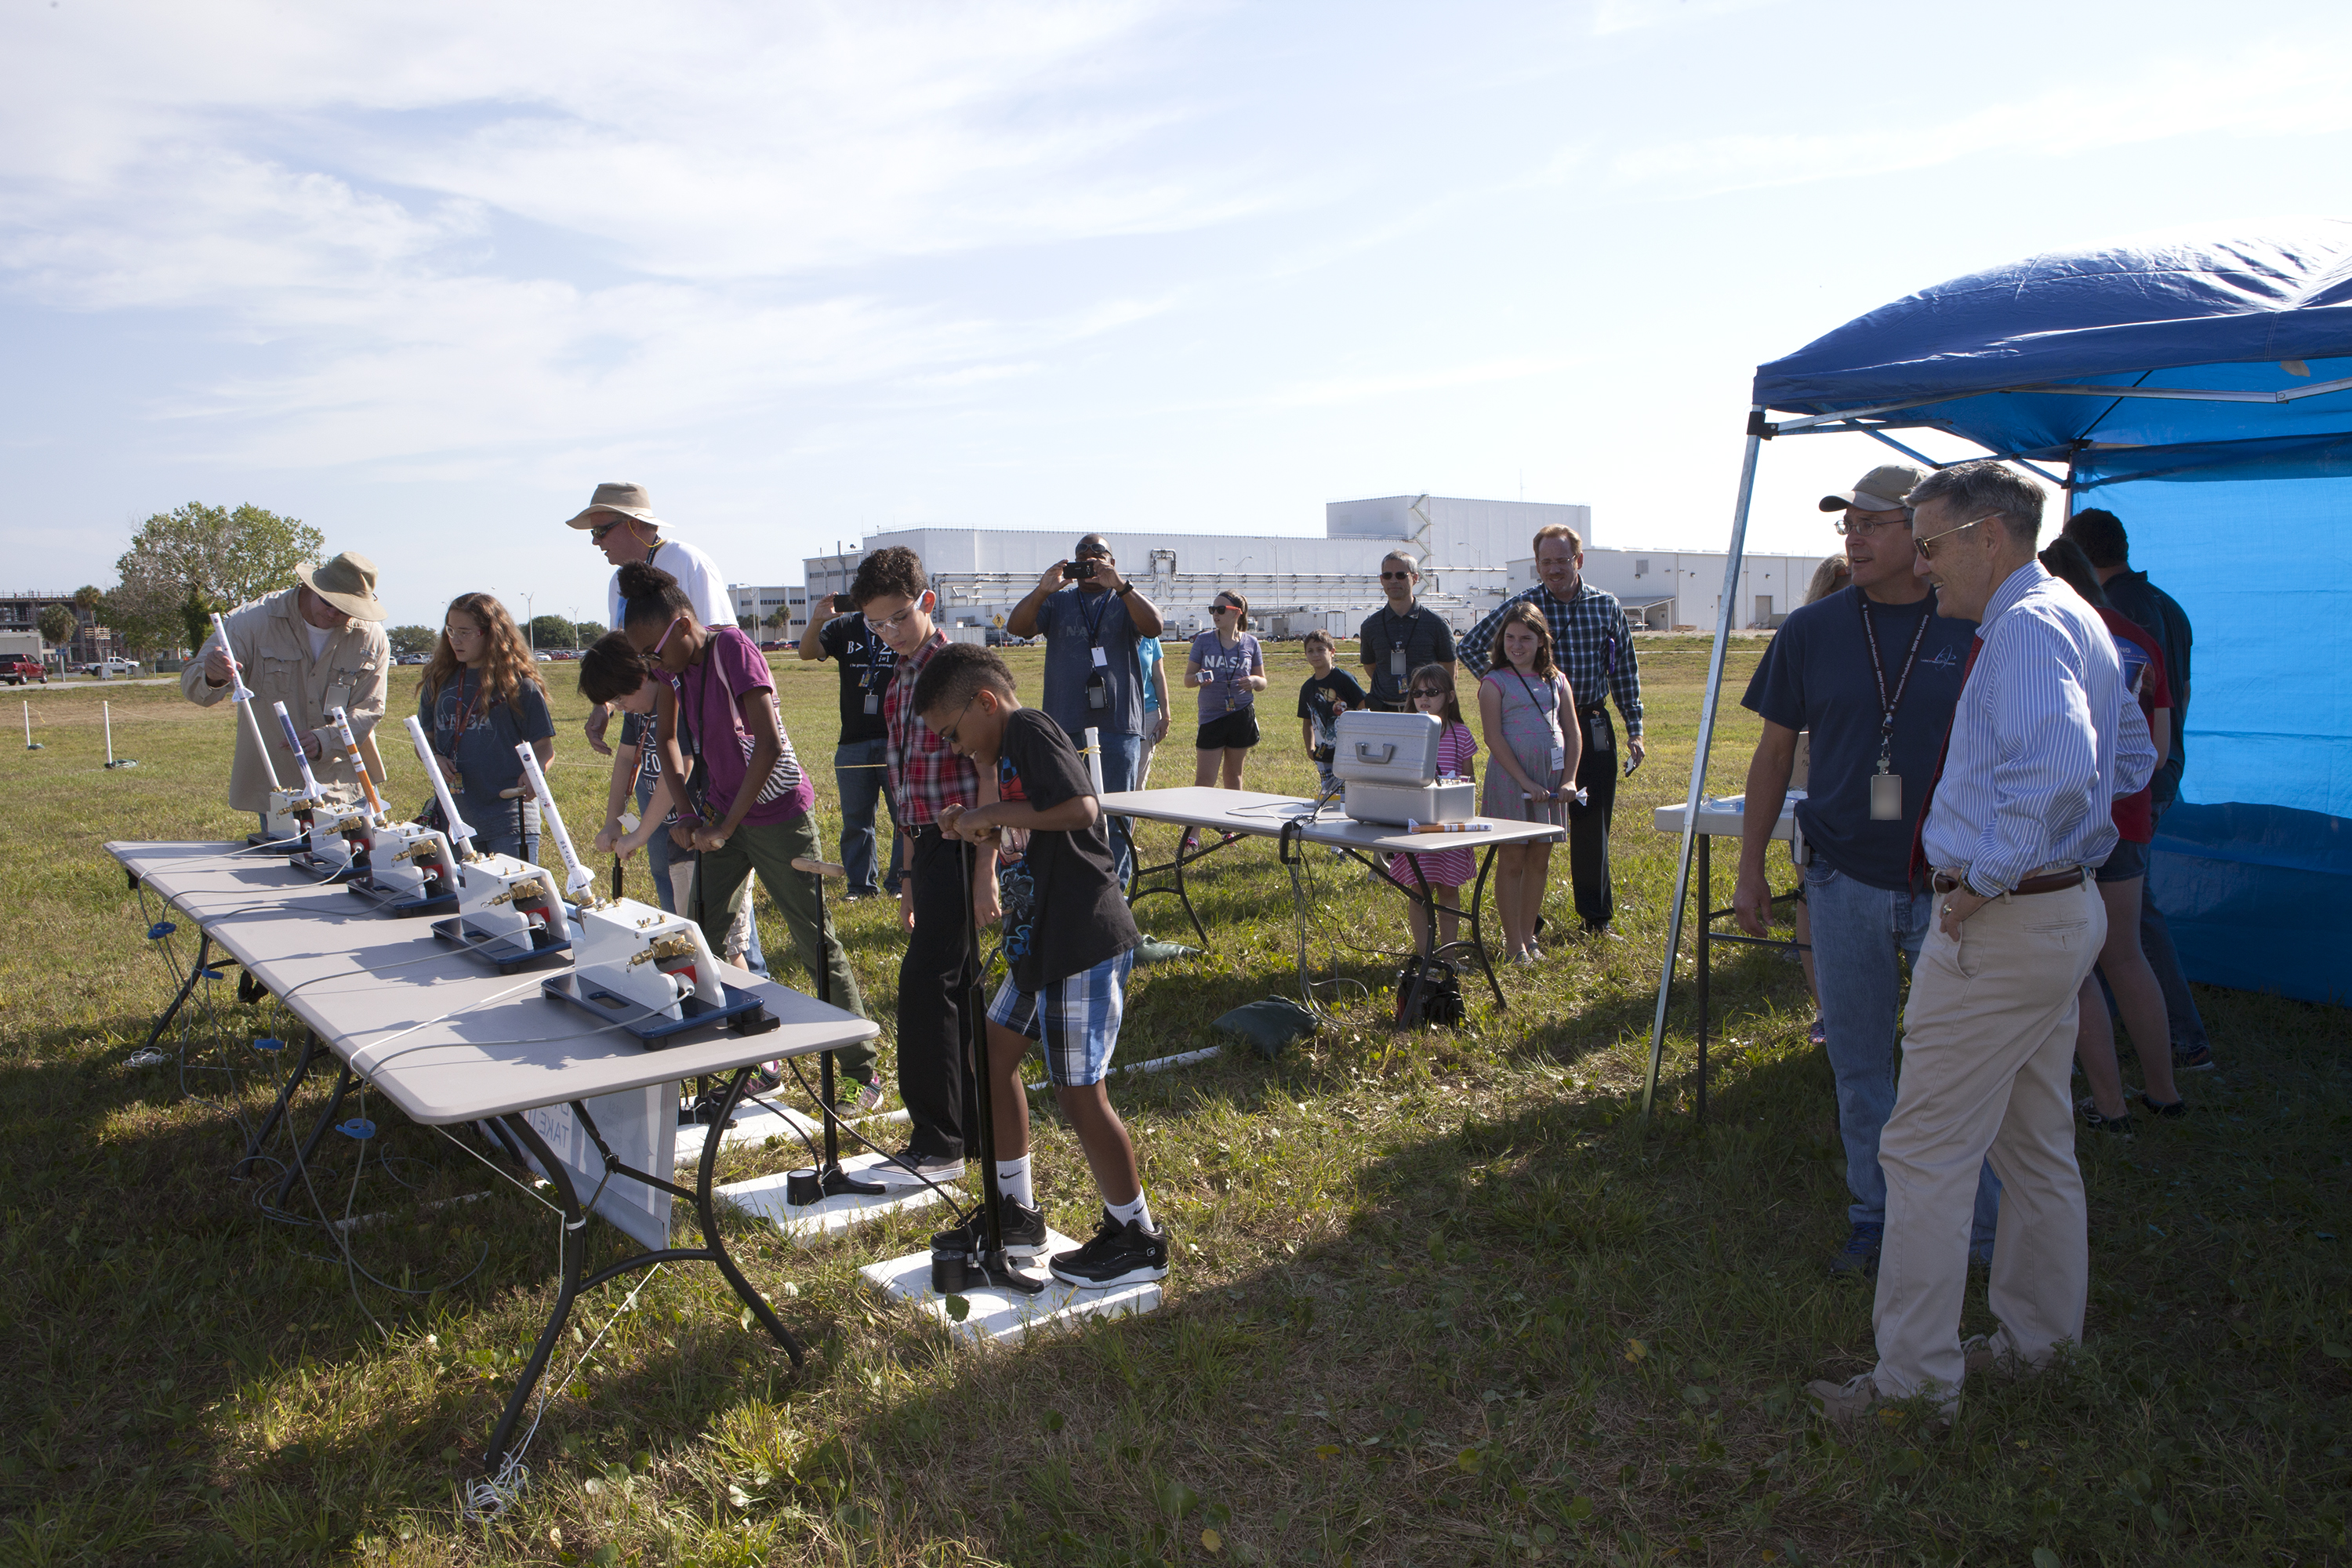 Children launch air rockets during take a child to work day at nasa s kennedy space center